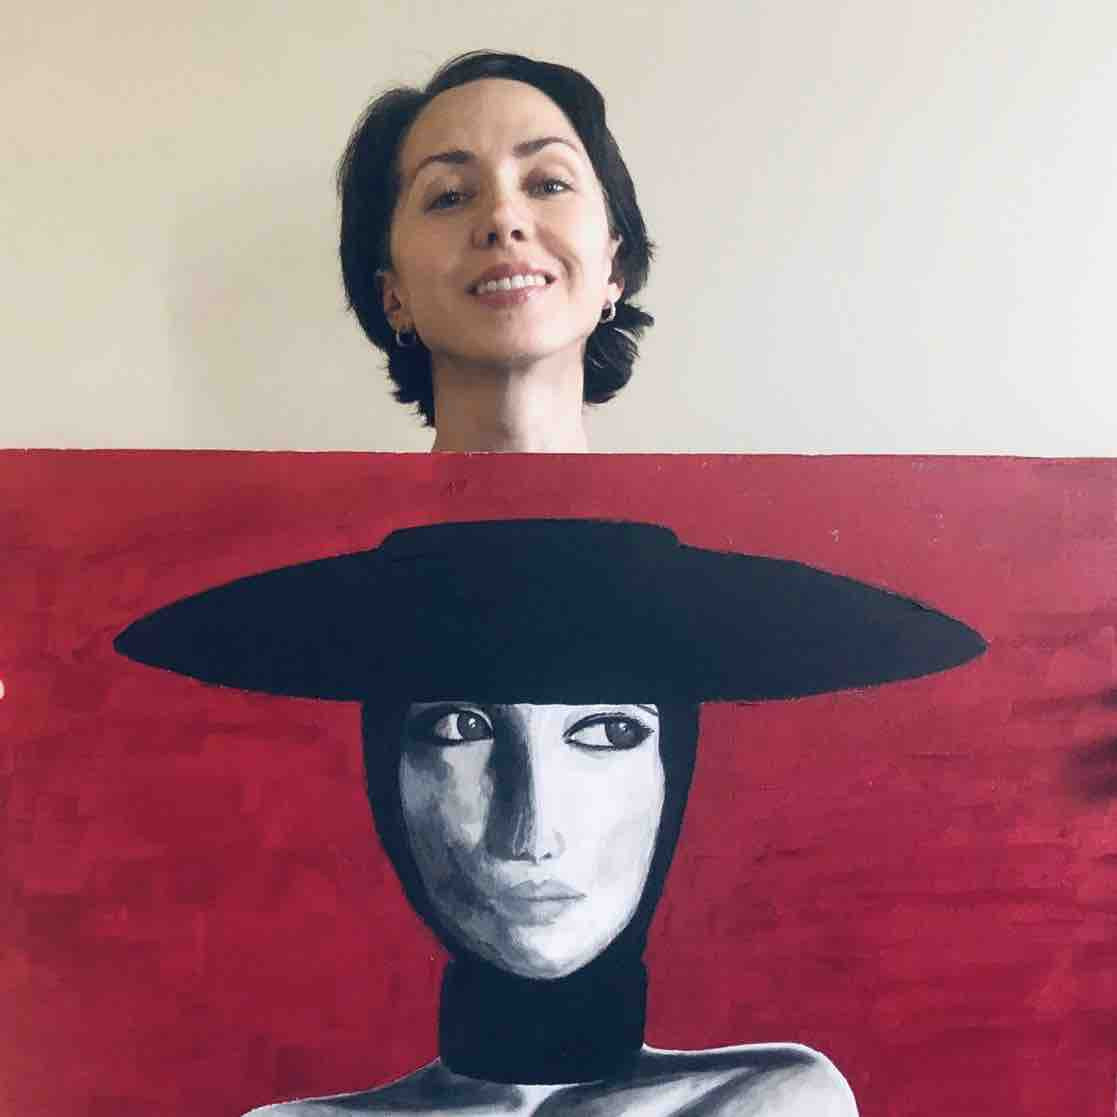 Olga Sevastianova revealed she can use her injured hand to draw and cook ©GoFundMe